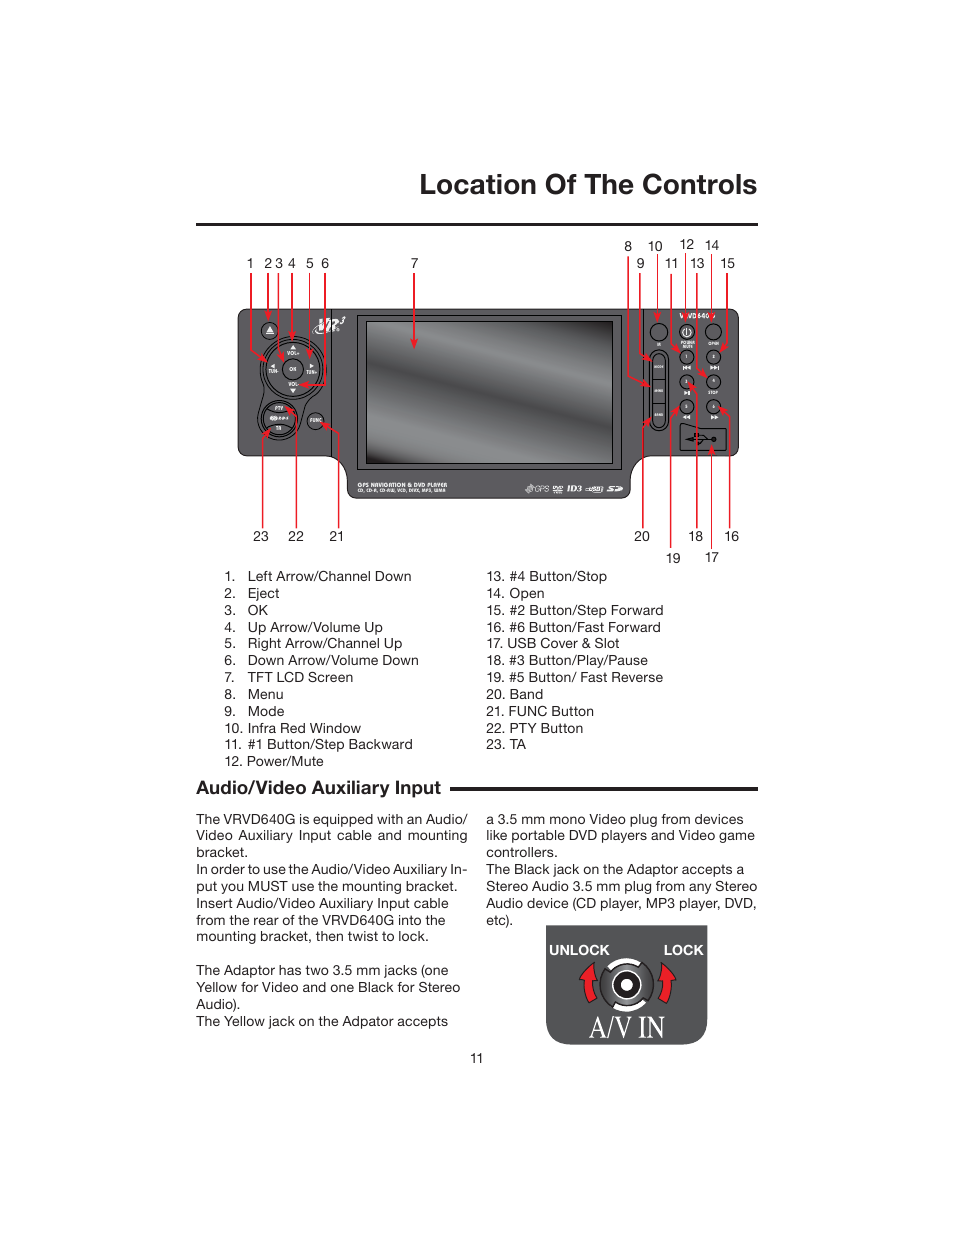 Location of the controls, Audio/video auxiliary input | Elite